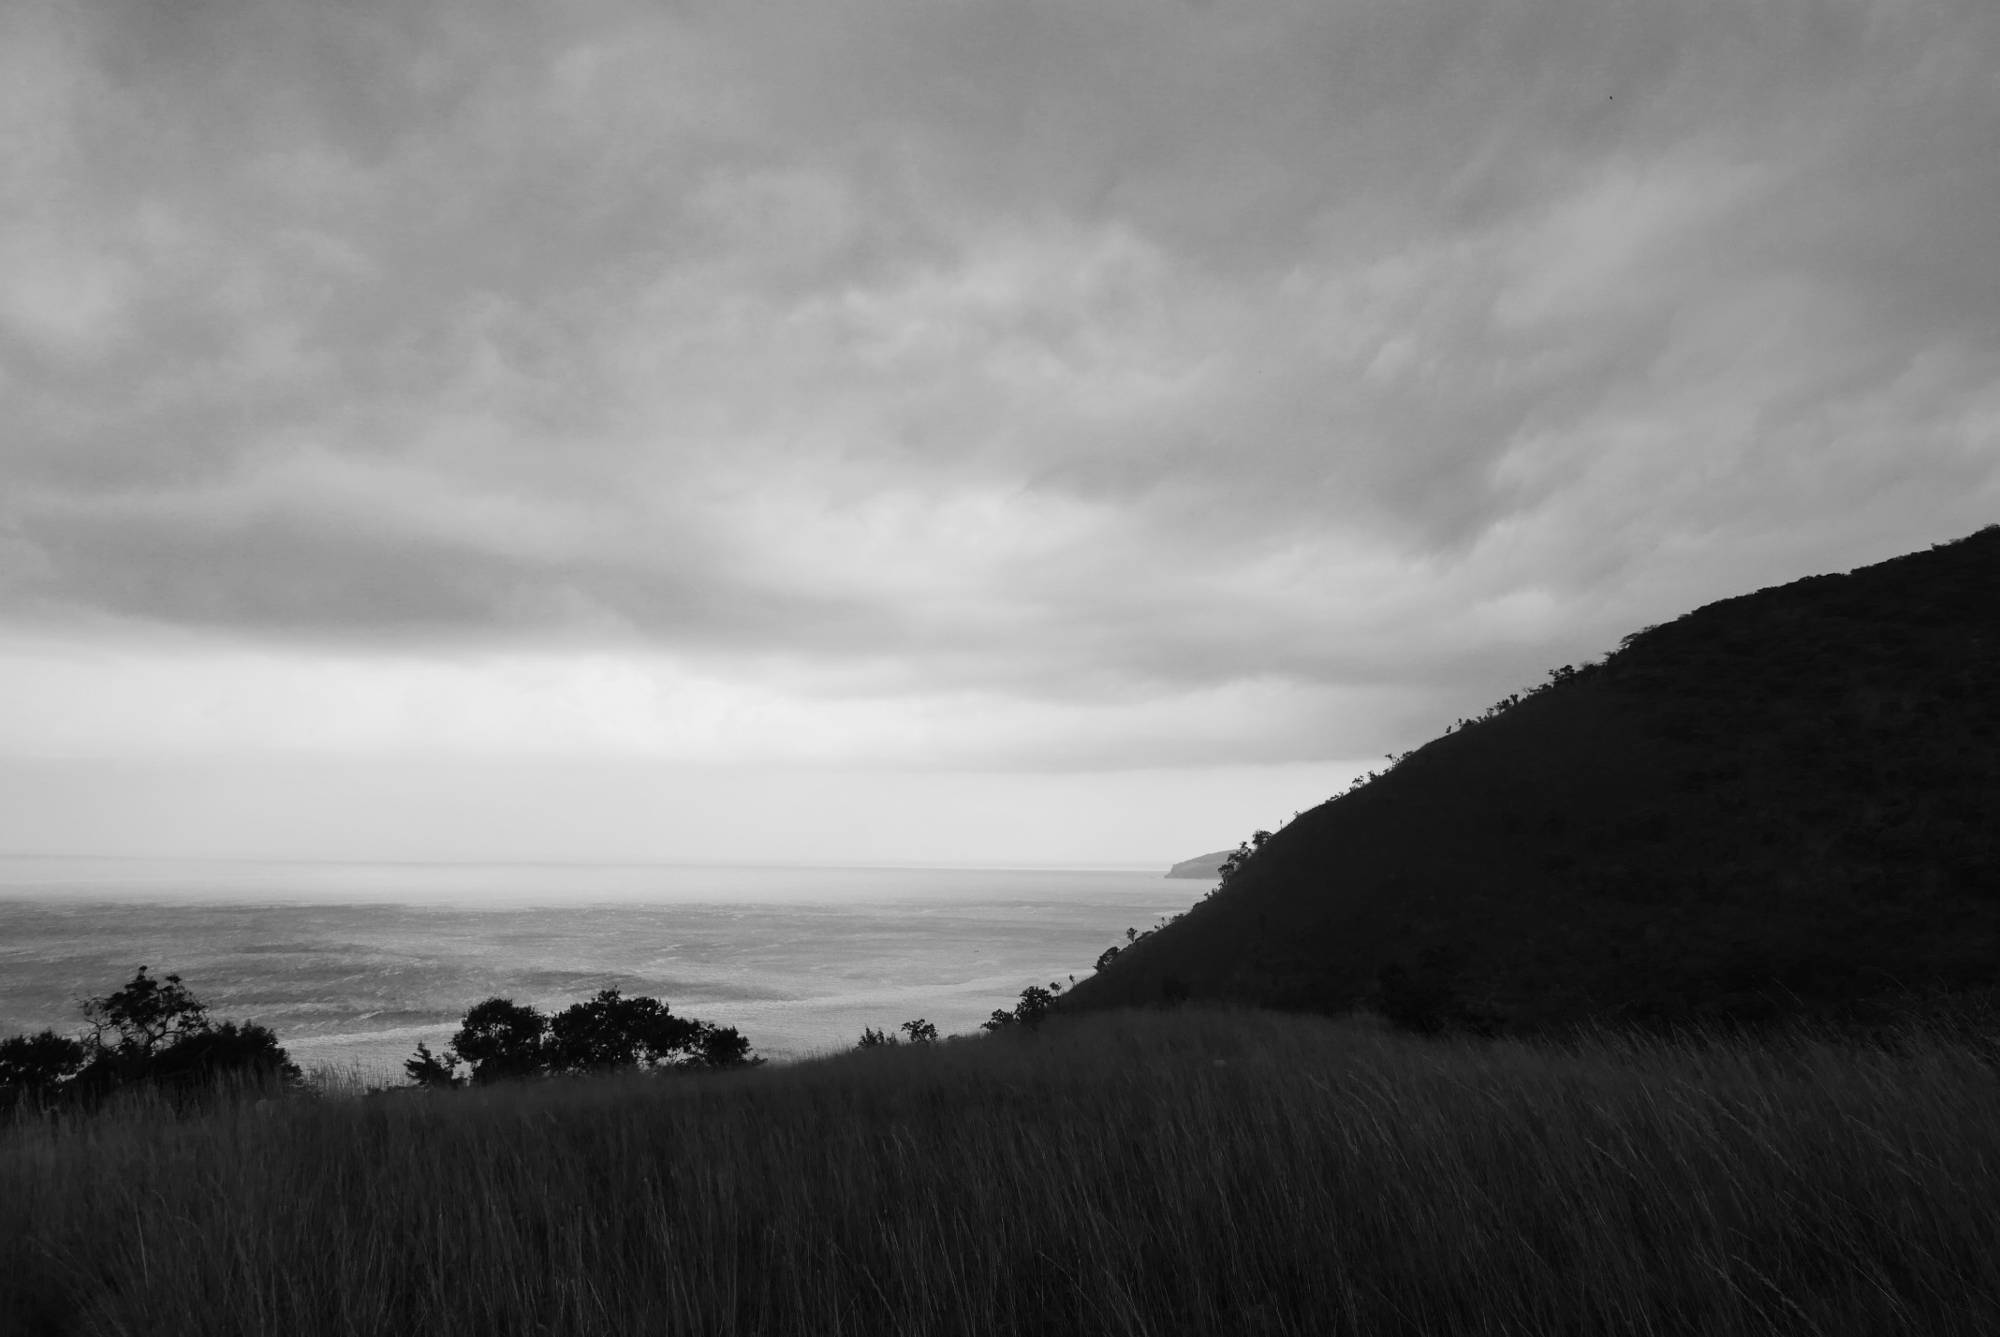 Thunderstorm over Lake Tanganyika